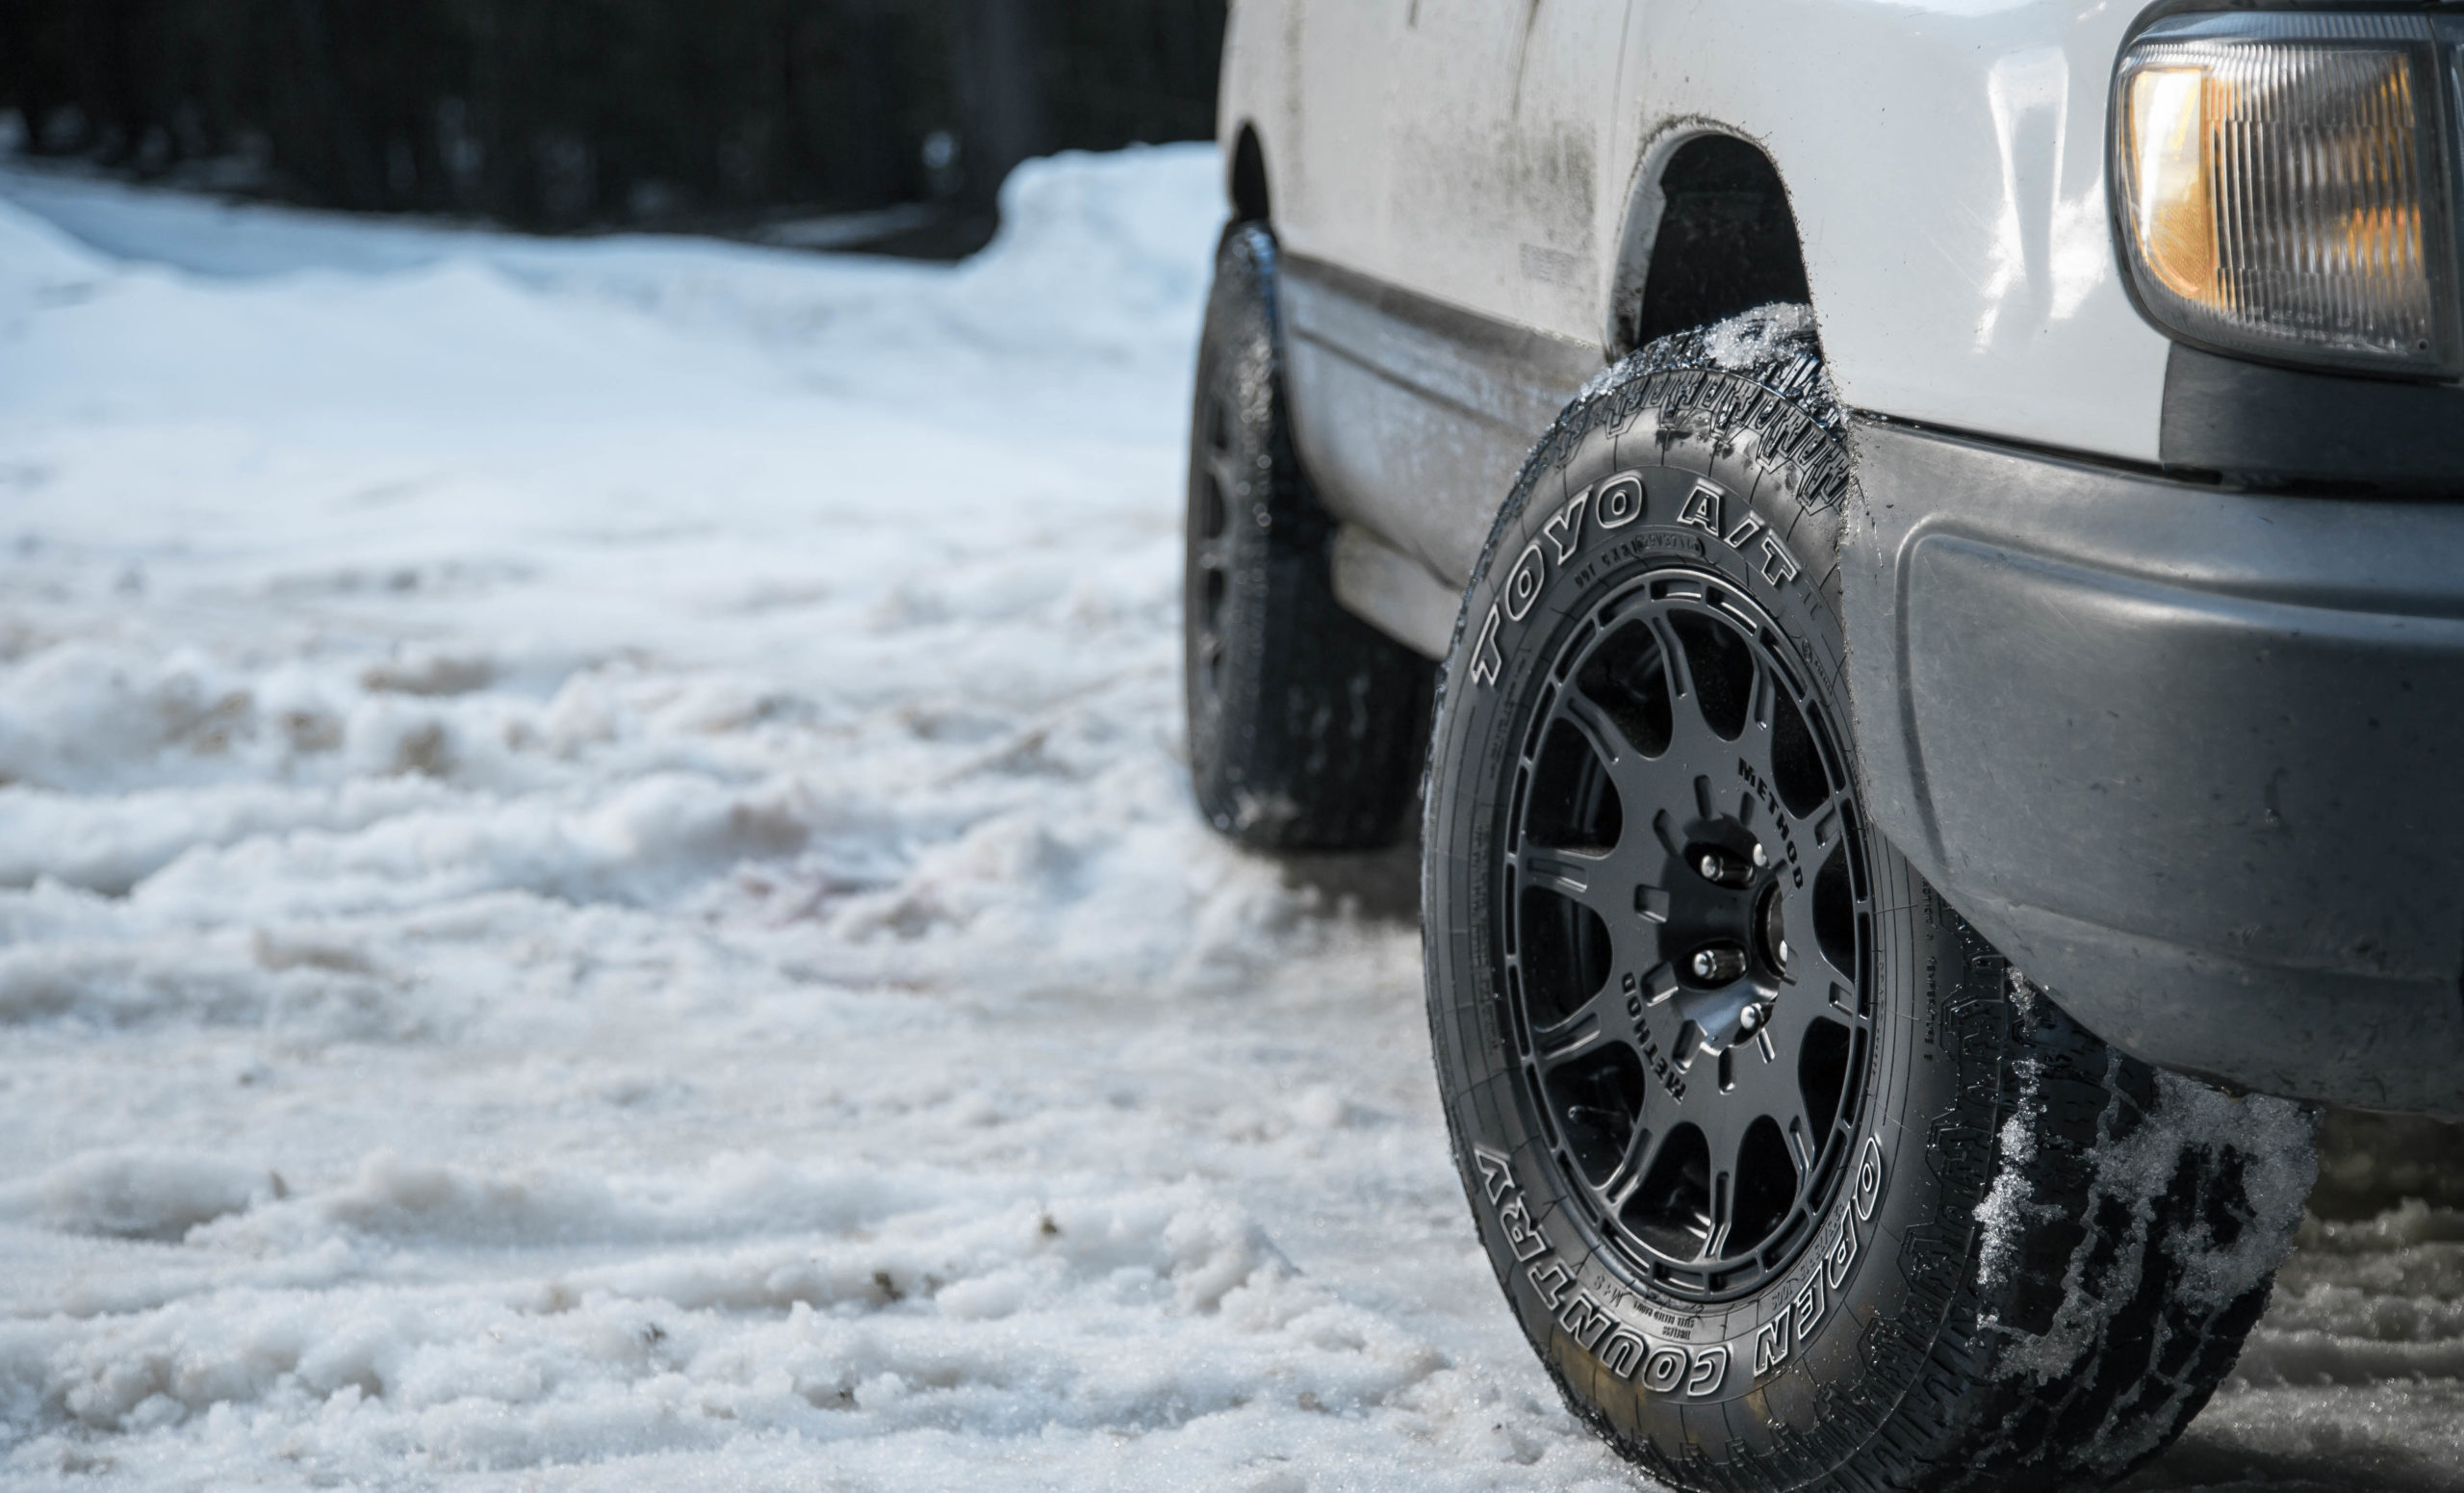 Subaru Forester with Toyo Open country tires in the snow